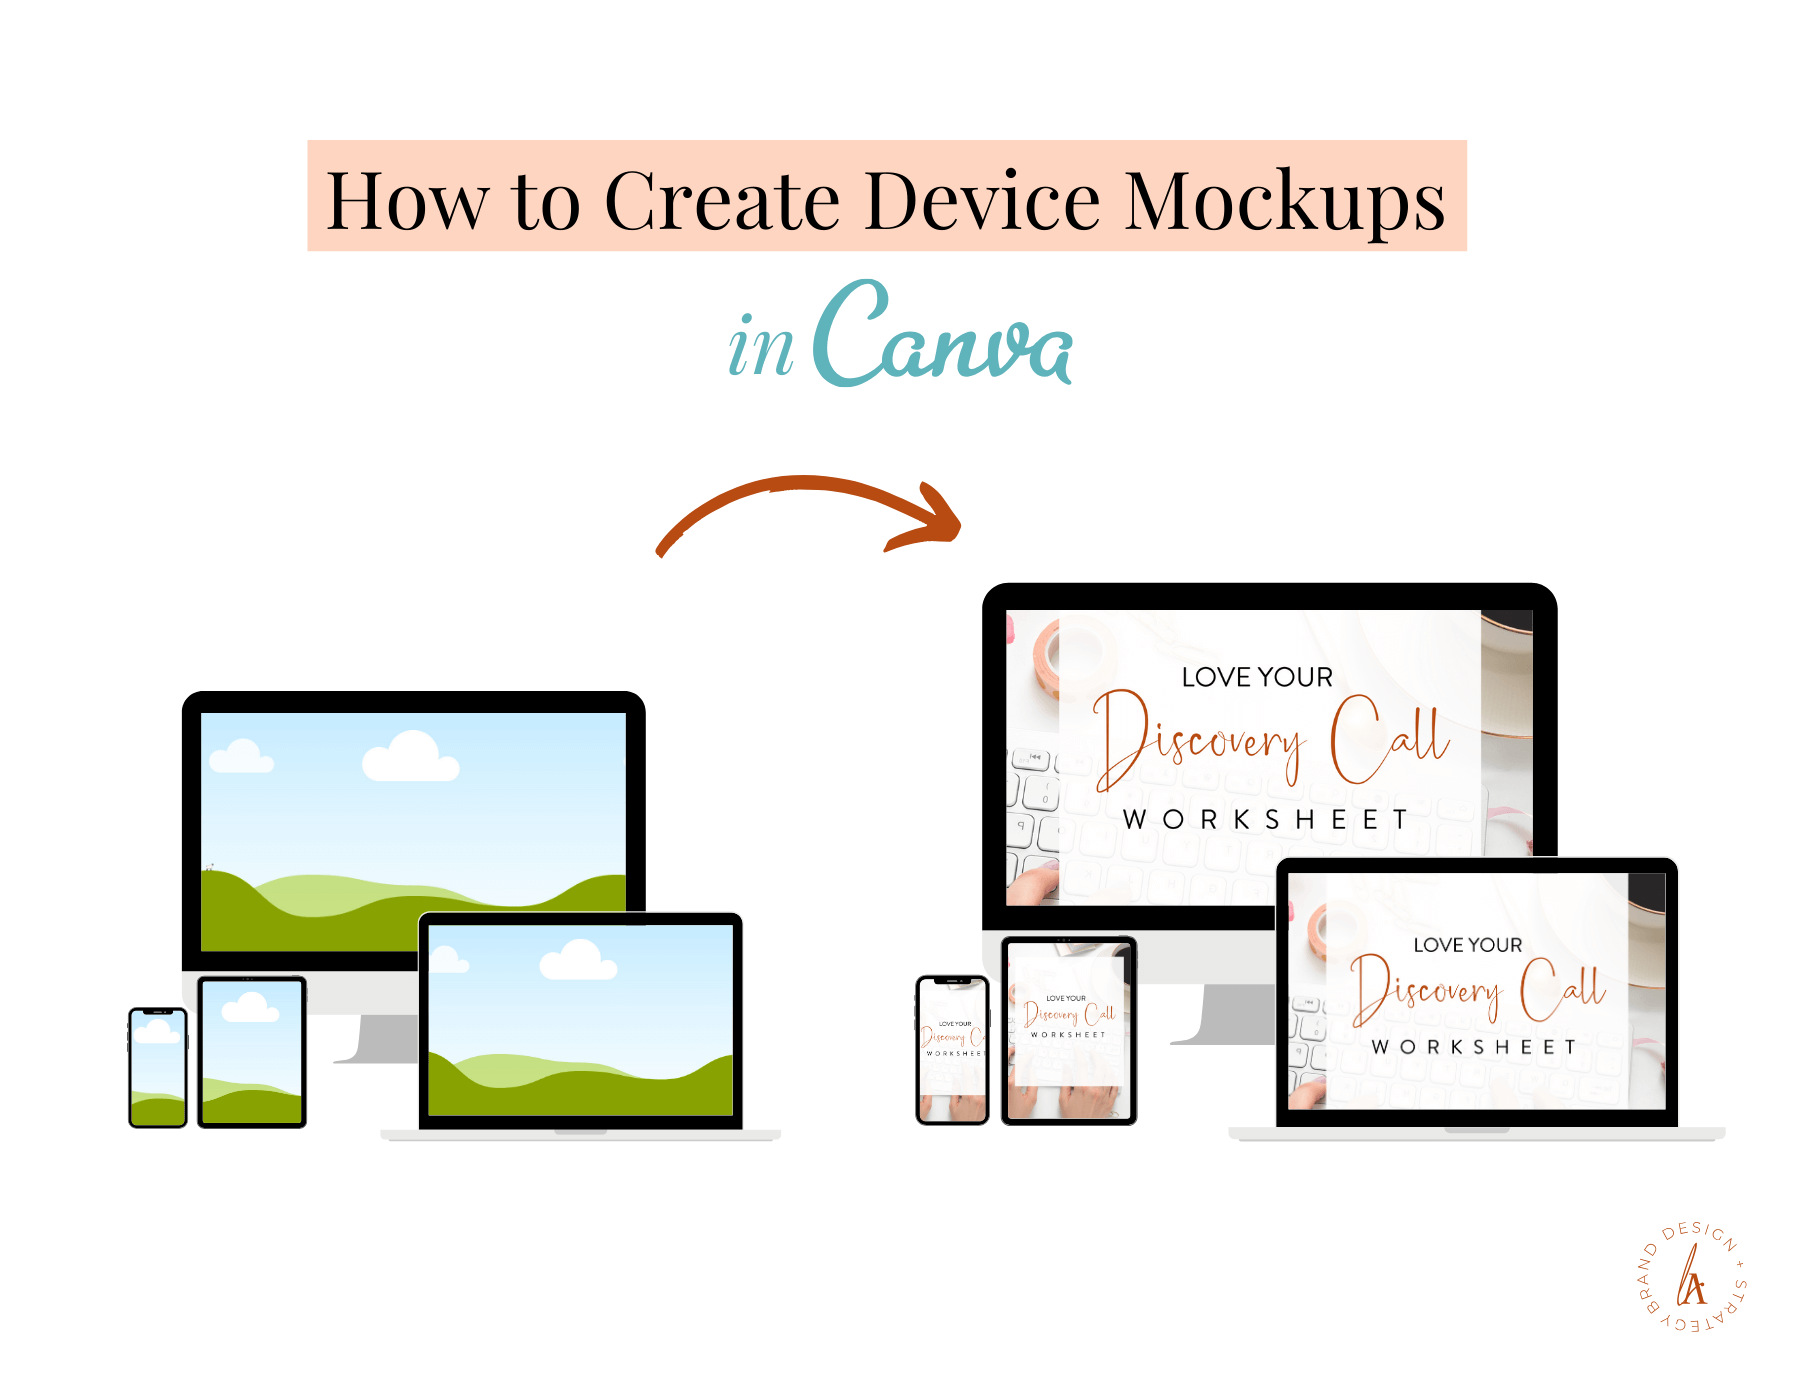 How to Create Device Mockup in Canva